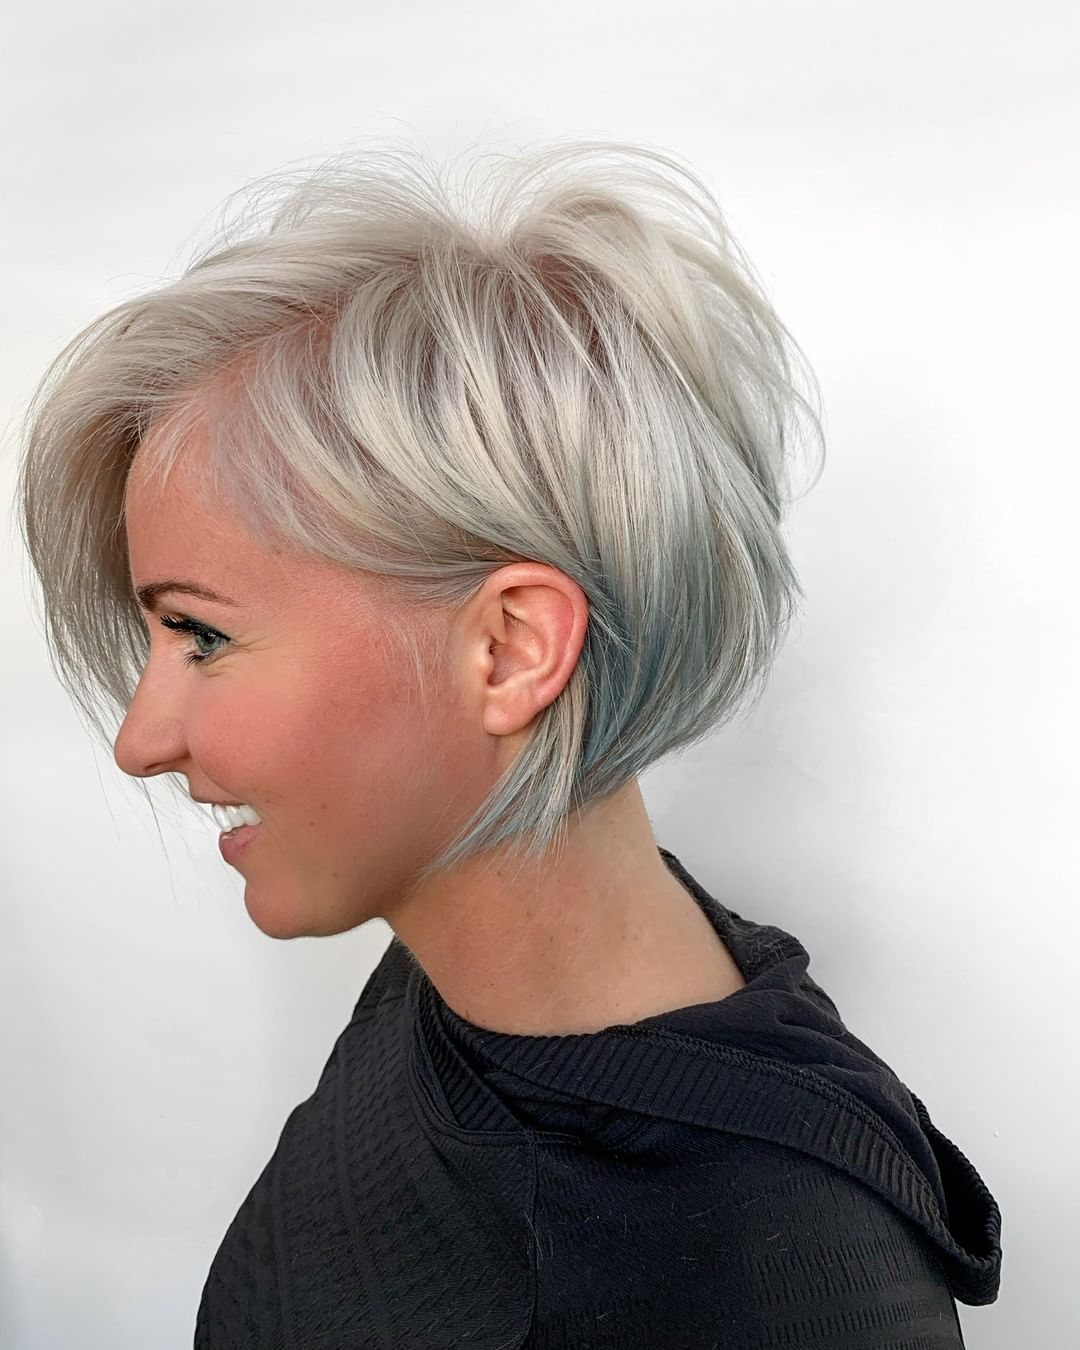 15 Impressive Short Hairstyles for Fine Hair in 15